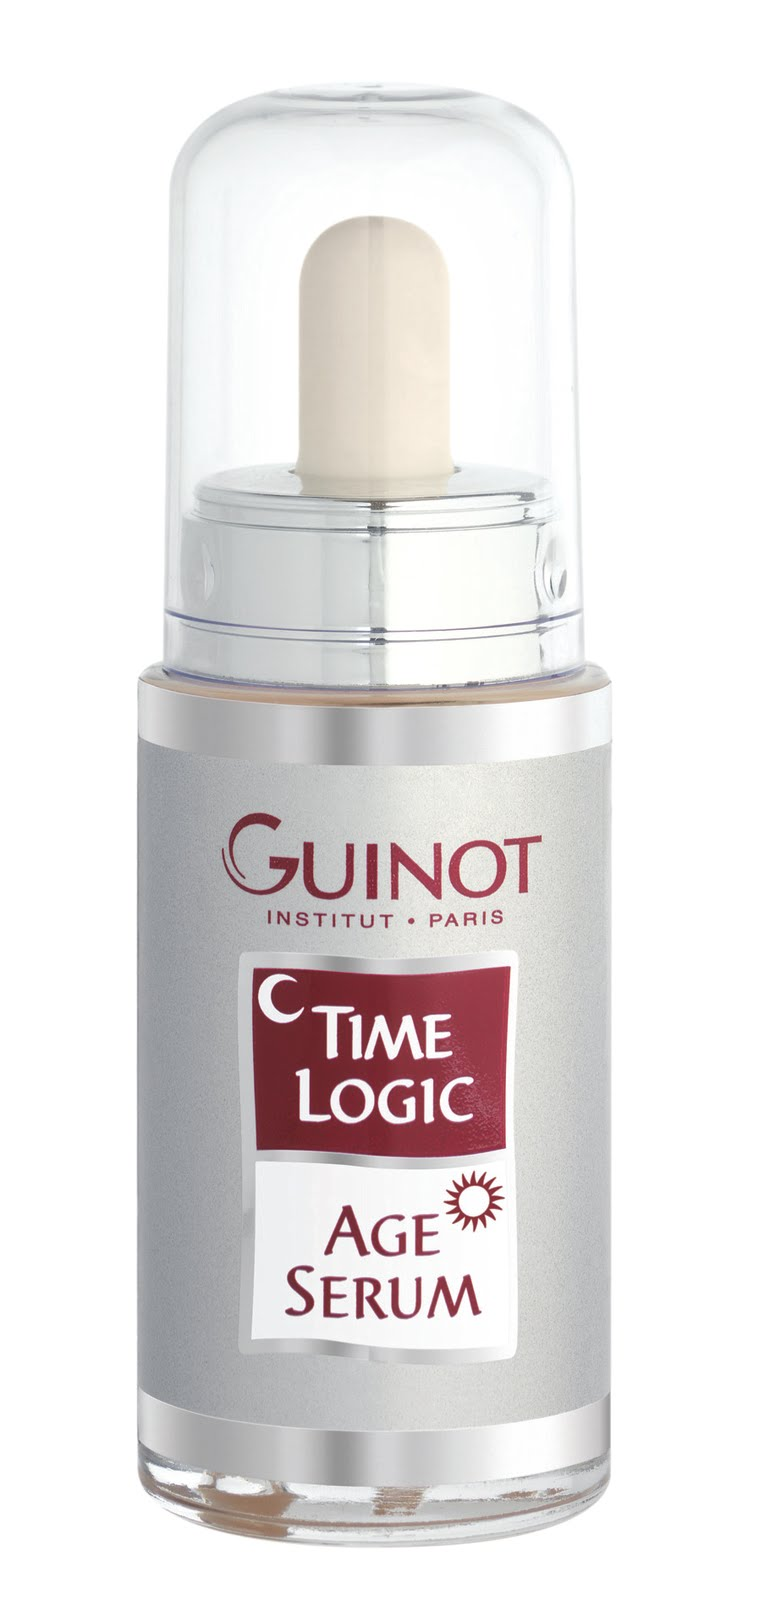 Time Logic Age Serum Exposed Naked Body With. Exposed Naked Body With